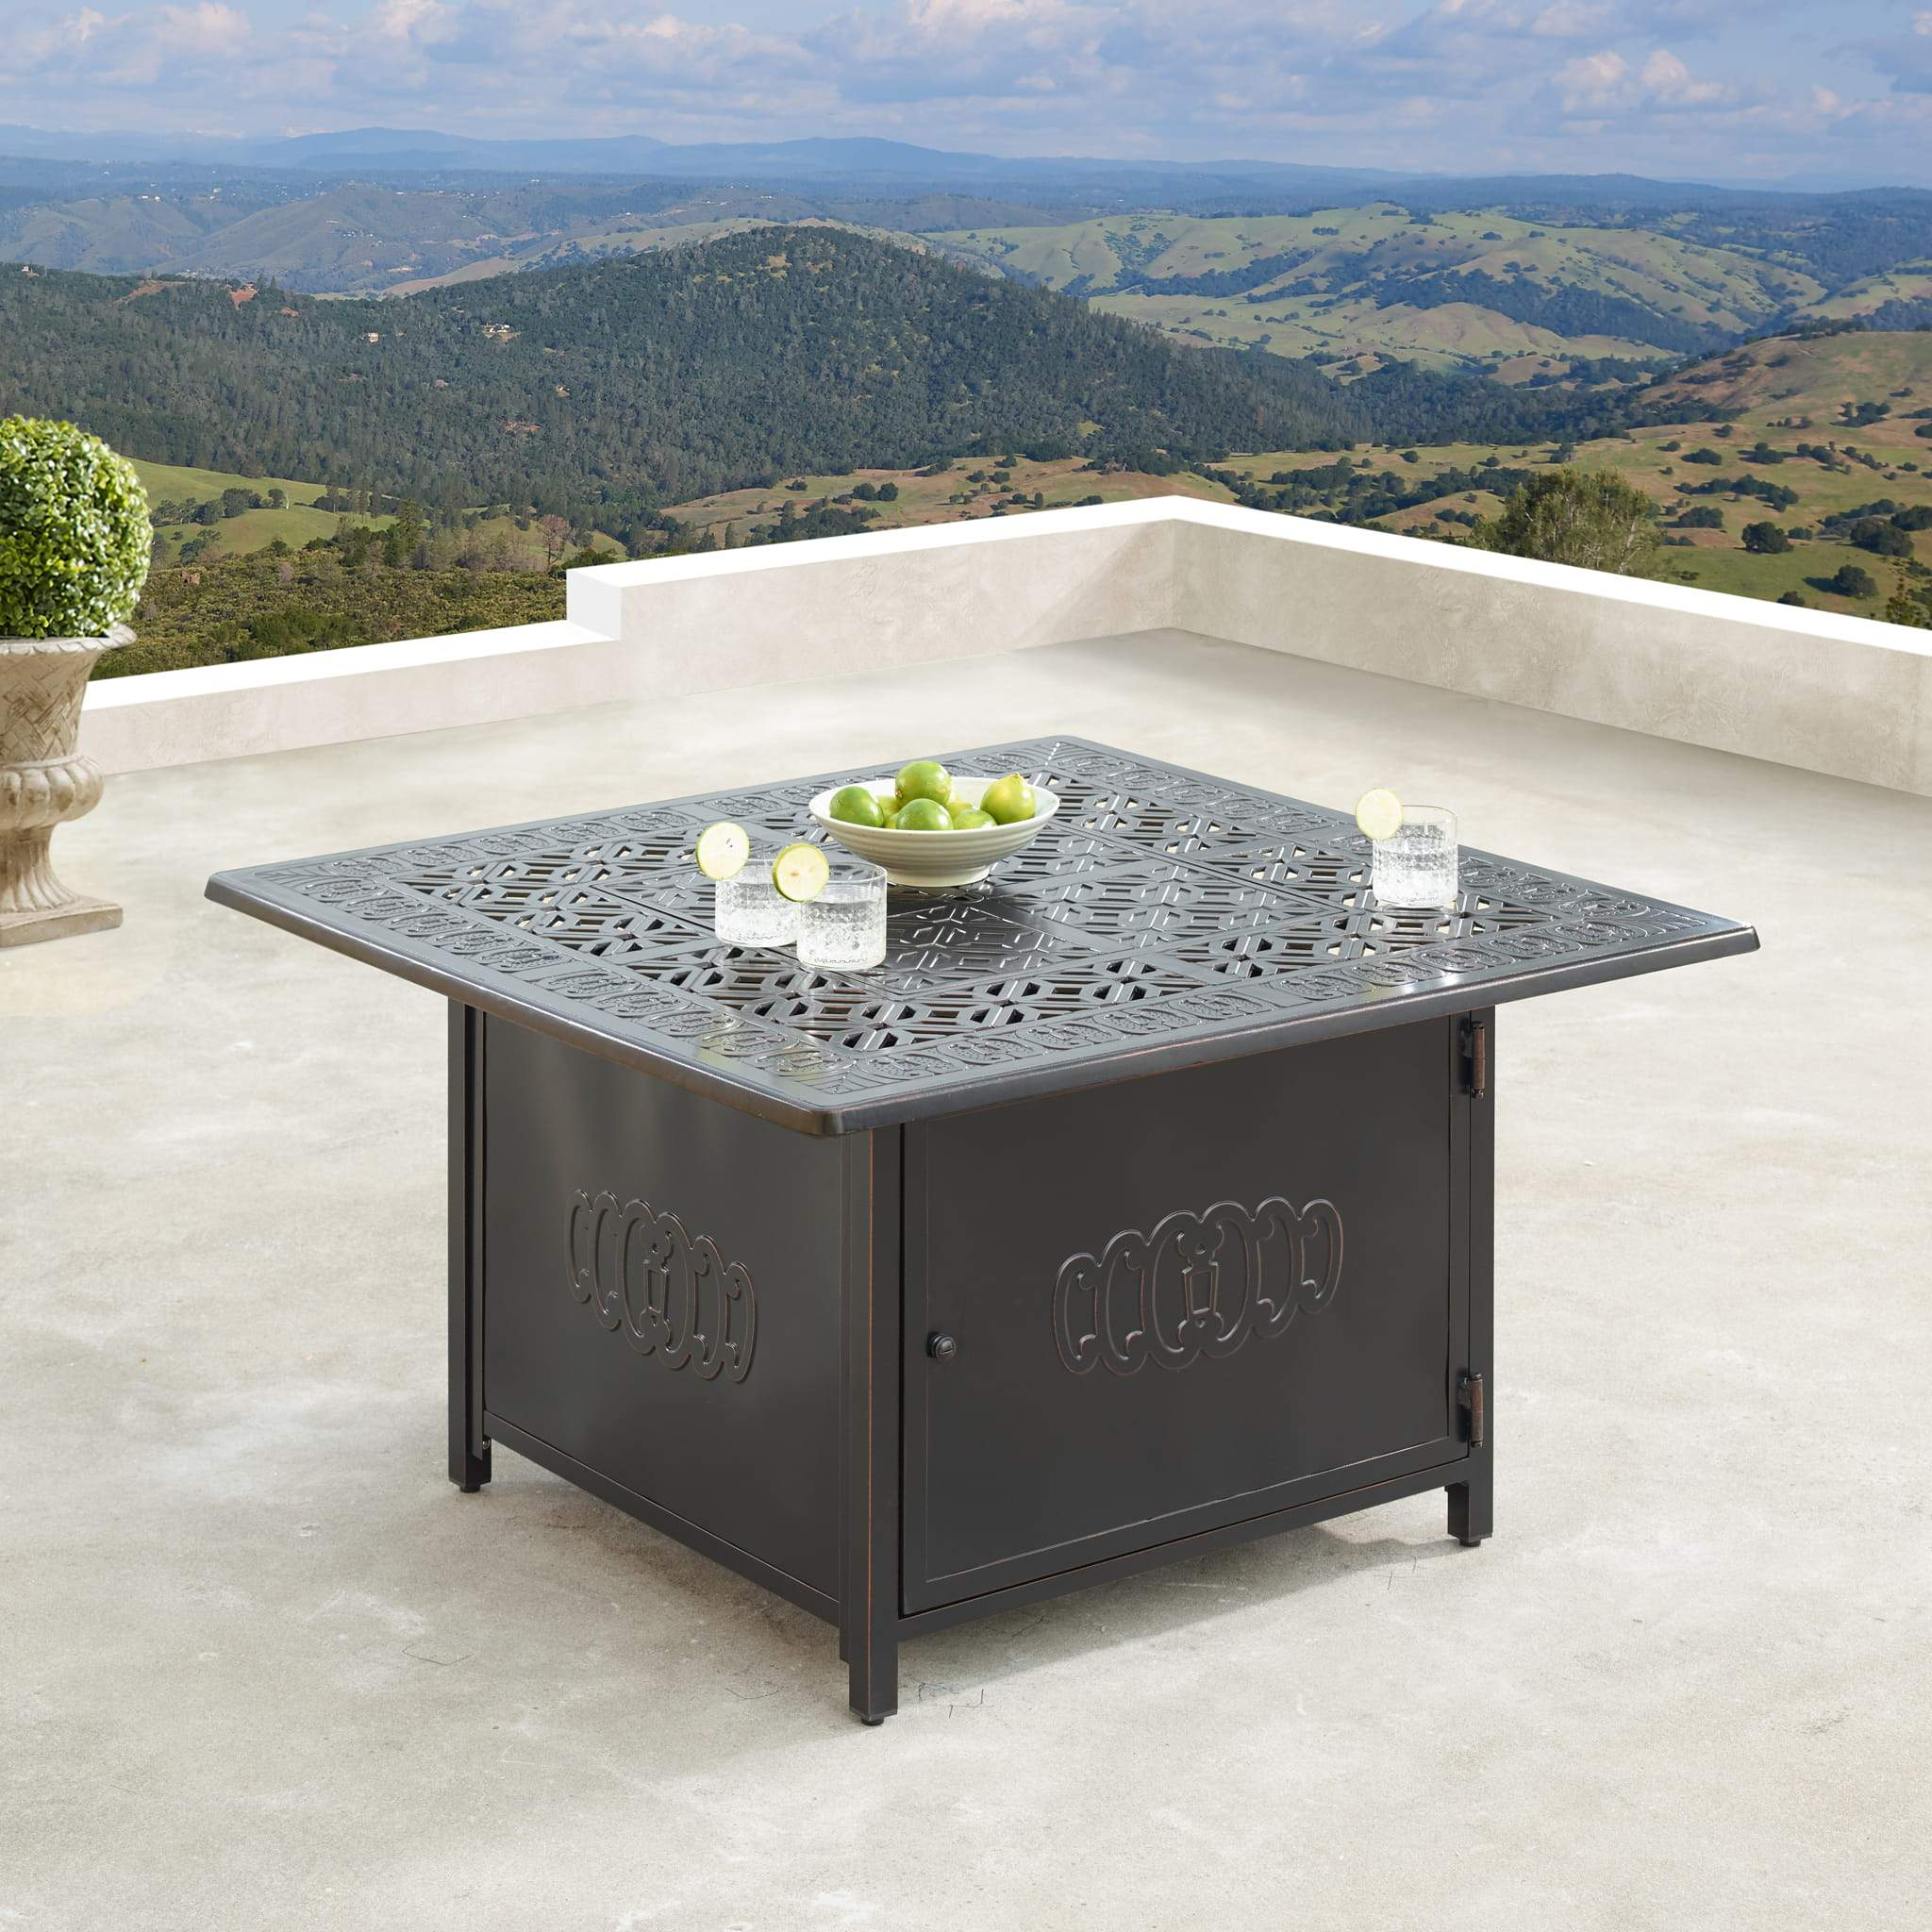 Oakland Living Hudson-Ronin 5-Piece Outdoor Fire Table Set - HUDSON-RONIN-5PC-AC Outdoor Fire Table Sets Oakland Living